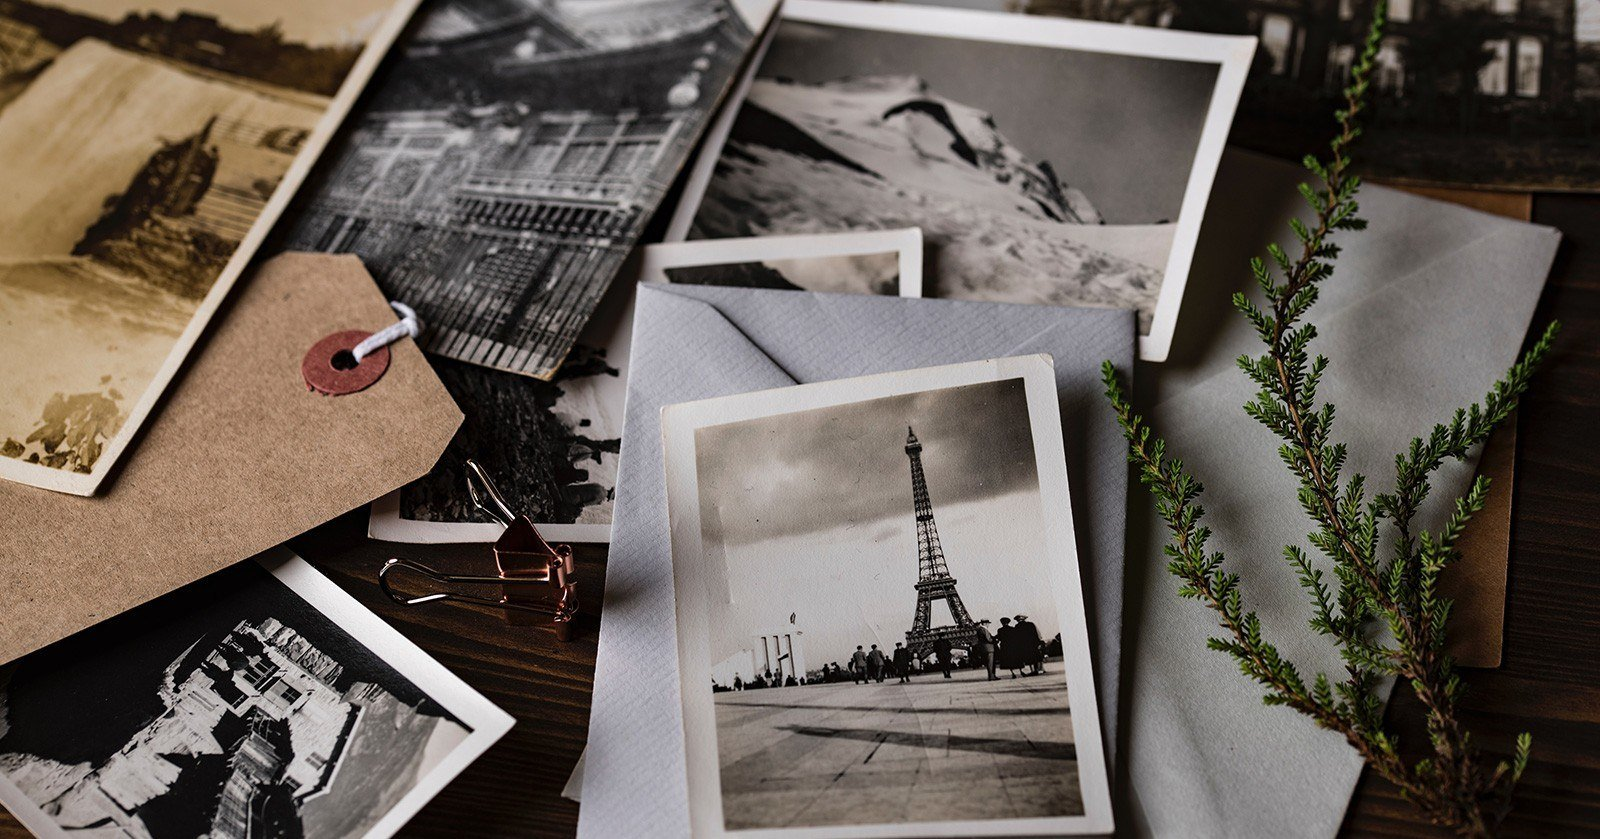 How to Salvage Photos, Videos That are Ruined From a Flood